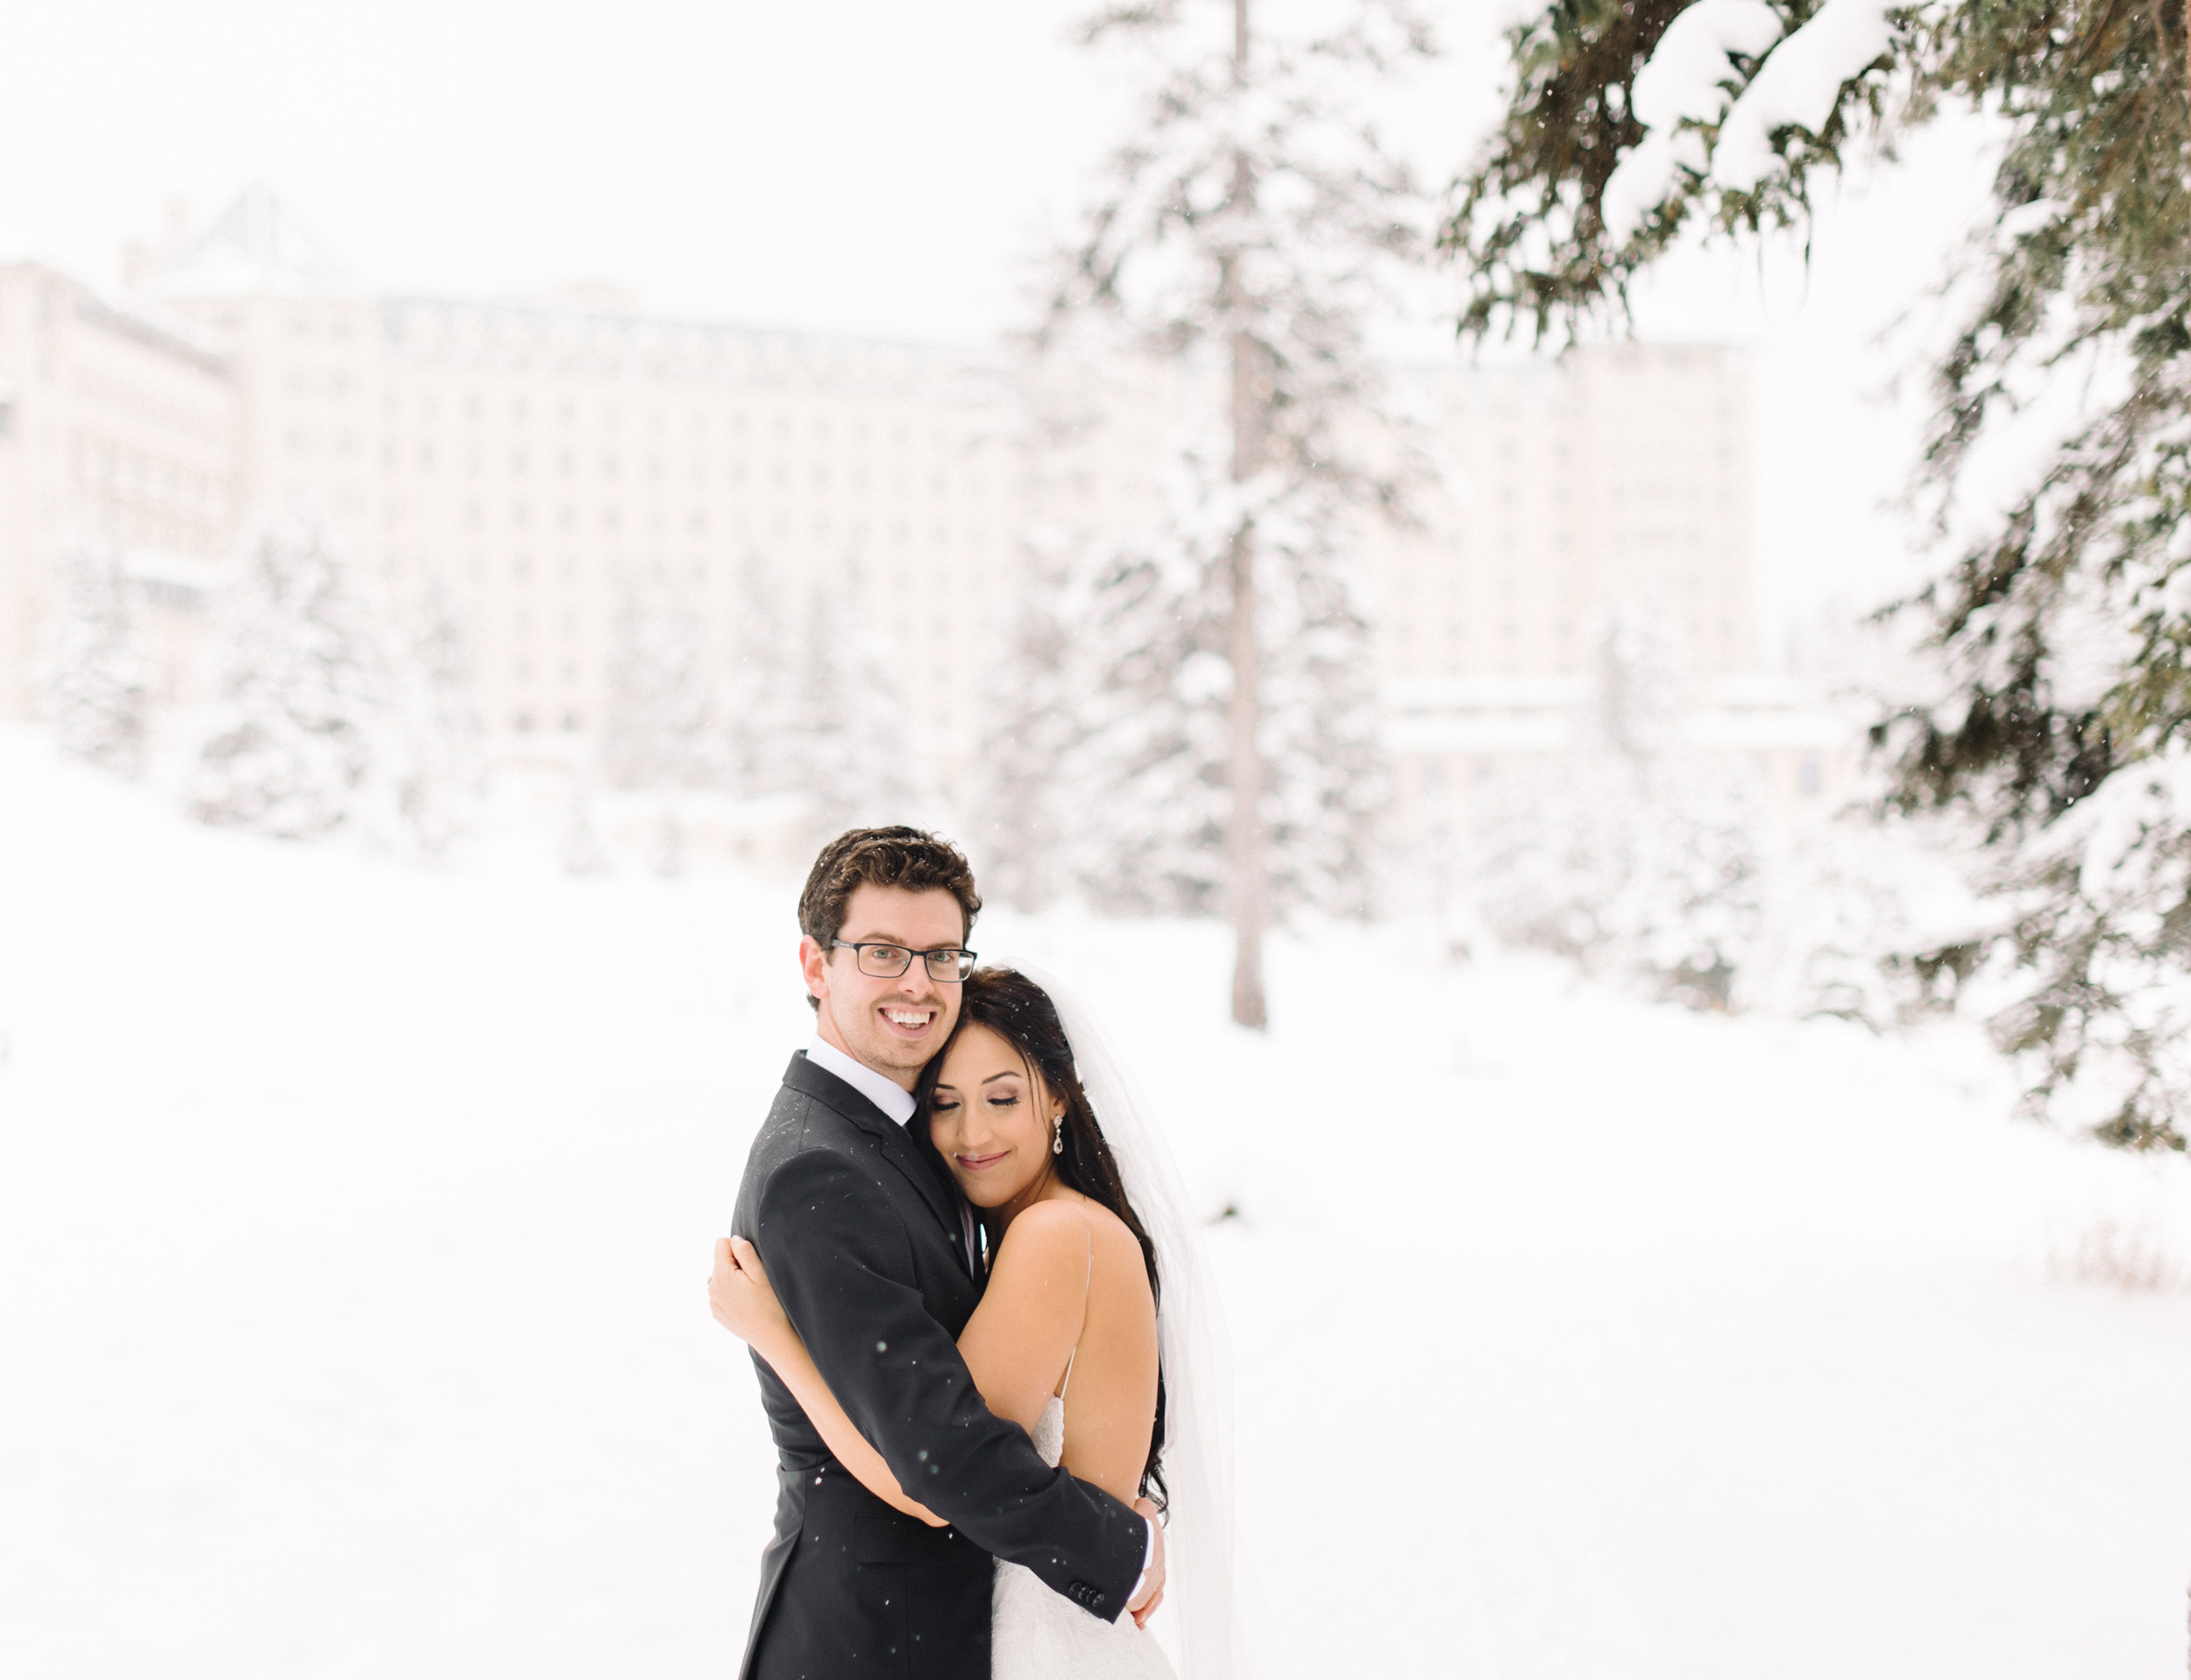 027-lake_louise_elopement.jpg